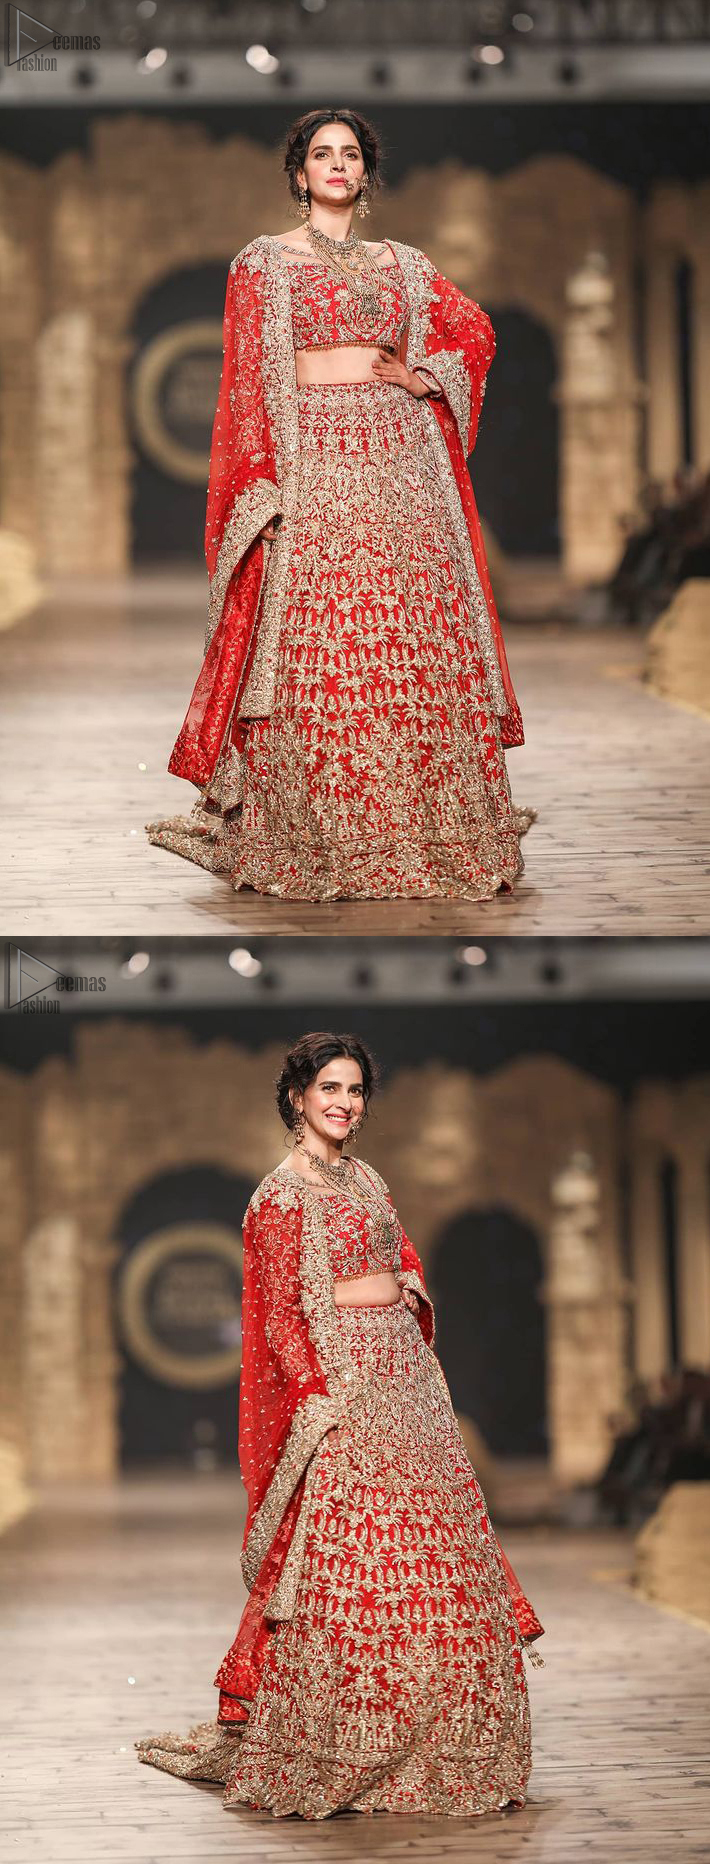 Pakistani Wedding Wear having Red Short Blouse Lehenga. While the final touch of golden embroidery concludes with the supreme elegance of the dress.